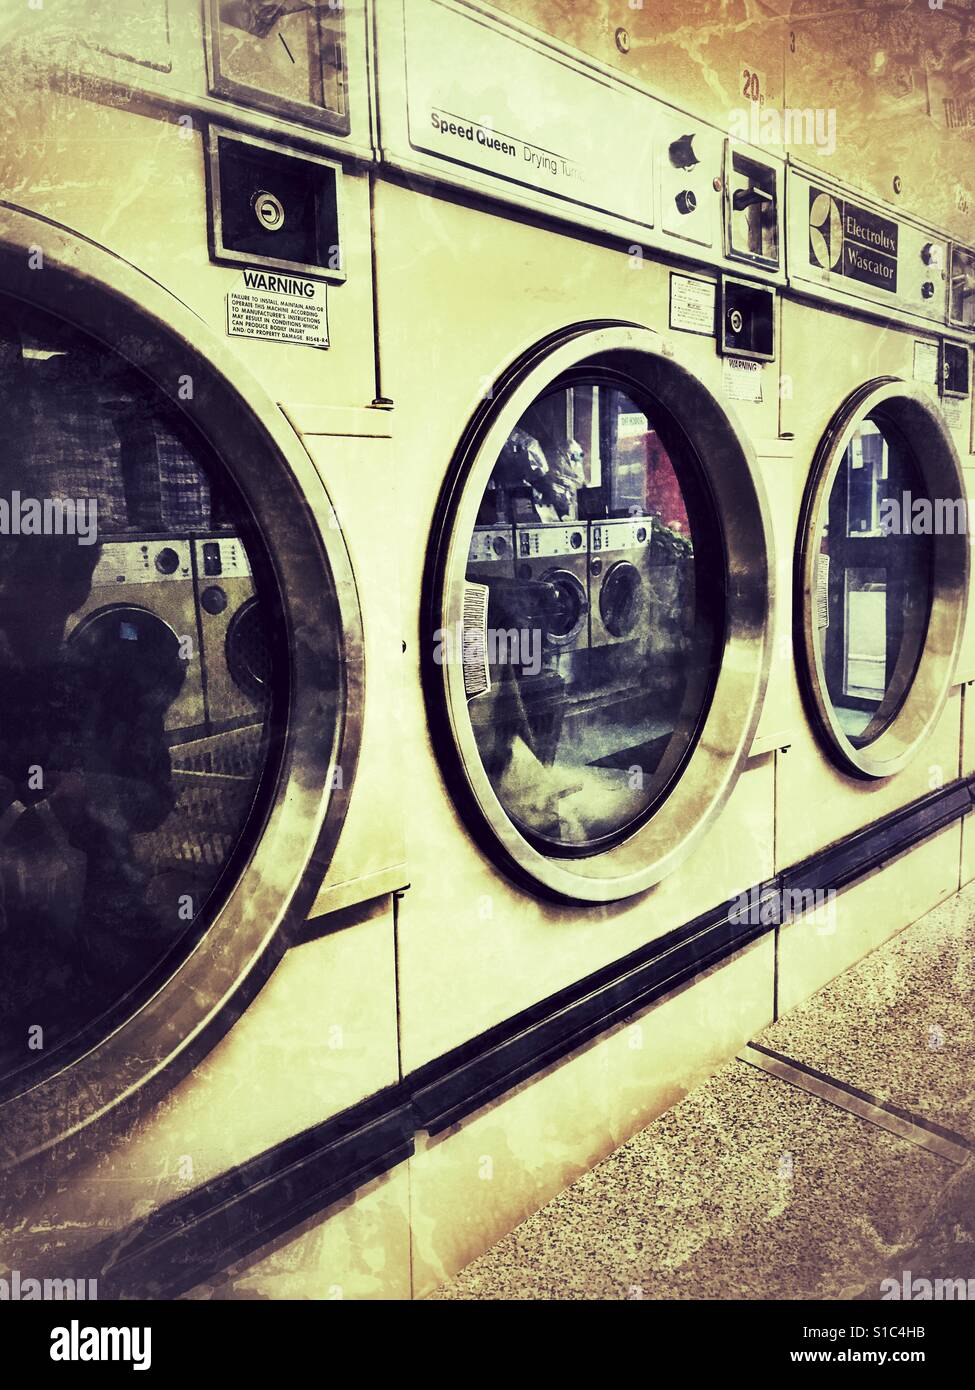 A row of dryers in a Laundrette - Stock Image